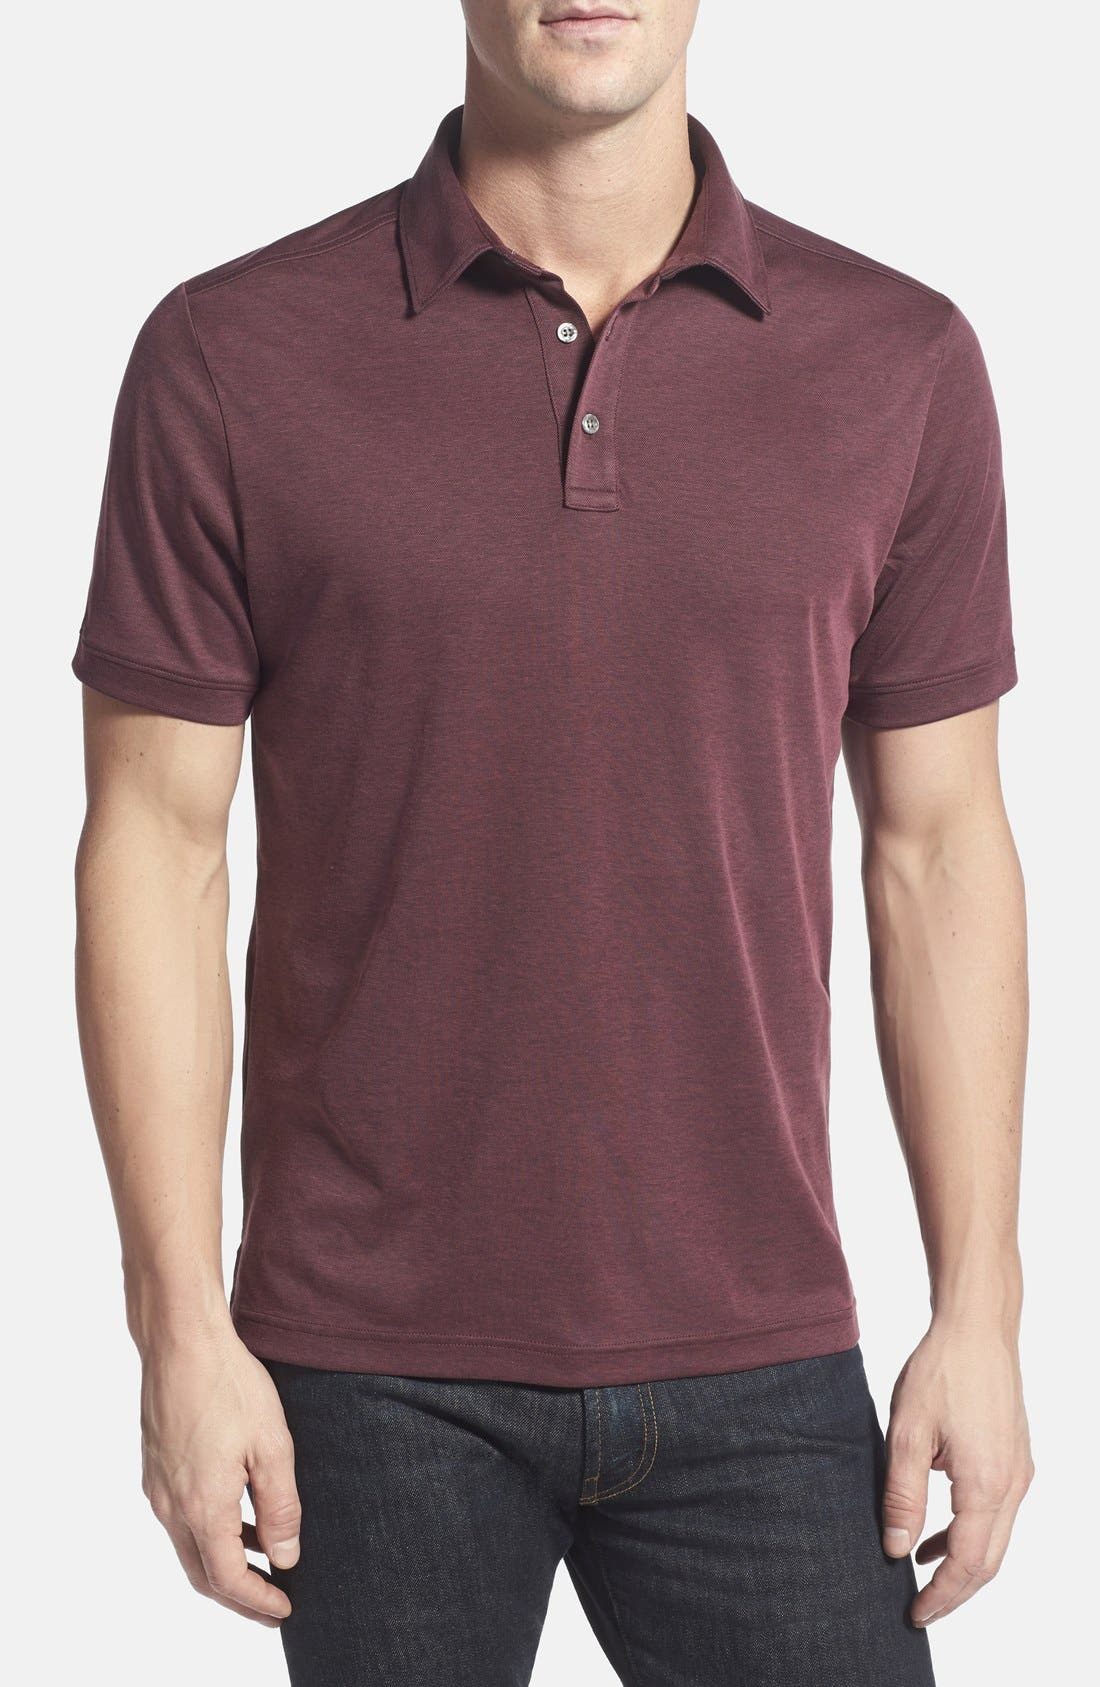 Alternate Image 1 Selected - John W. Nordstrom Regular Fit Pima Cotton Blend Polo